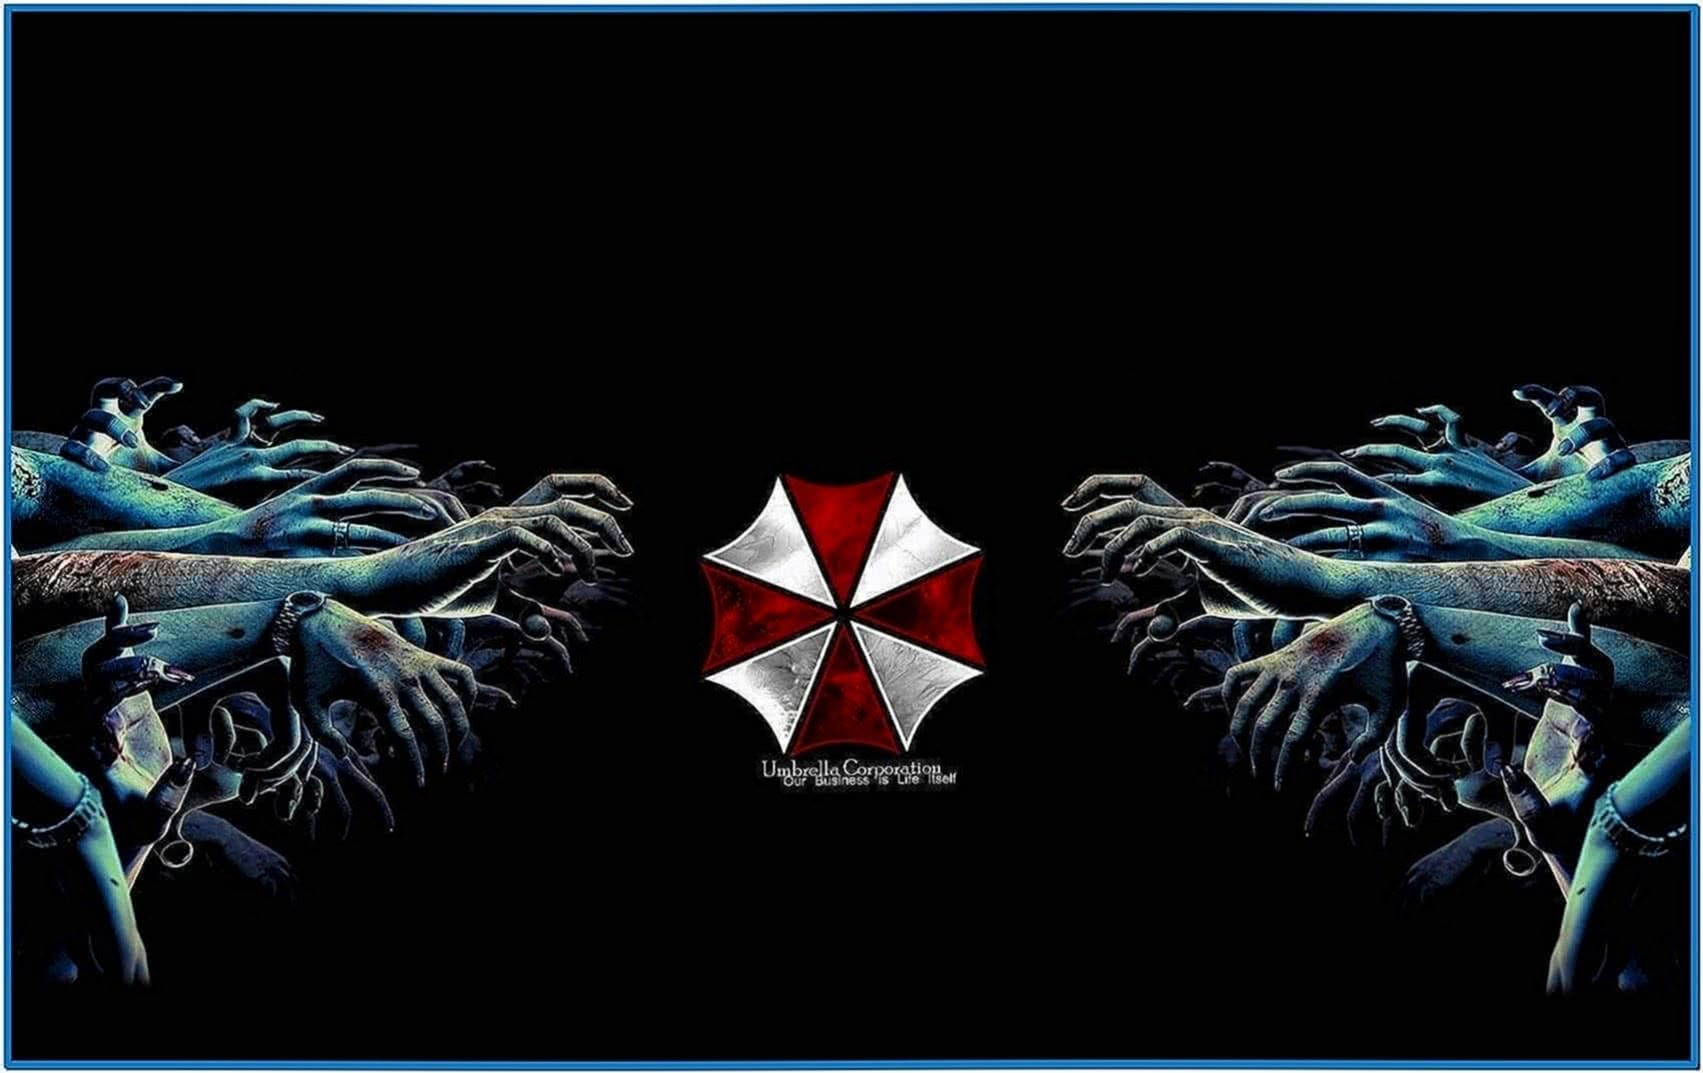 Umbrella Corporation Screensaver Zombies